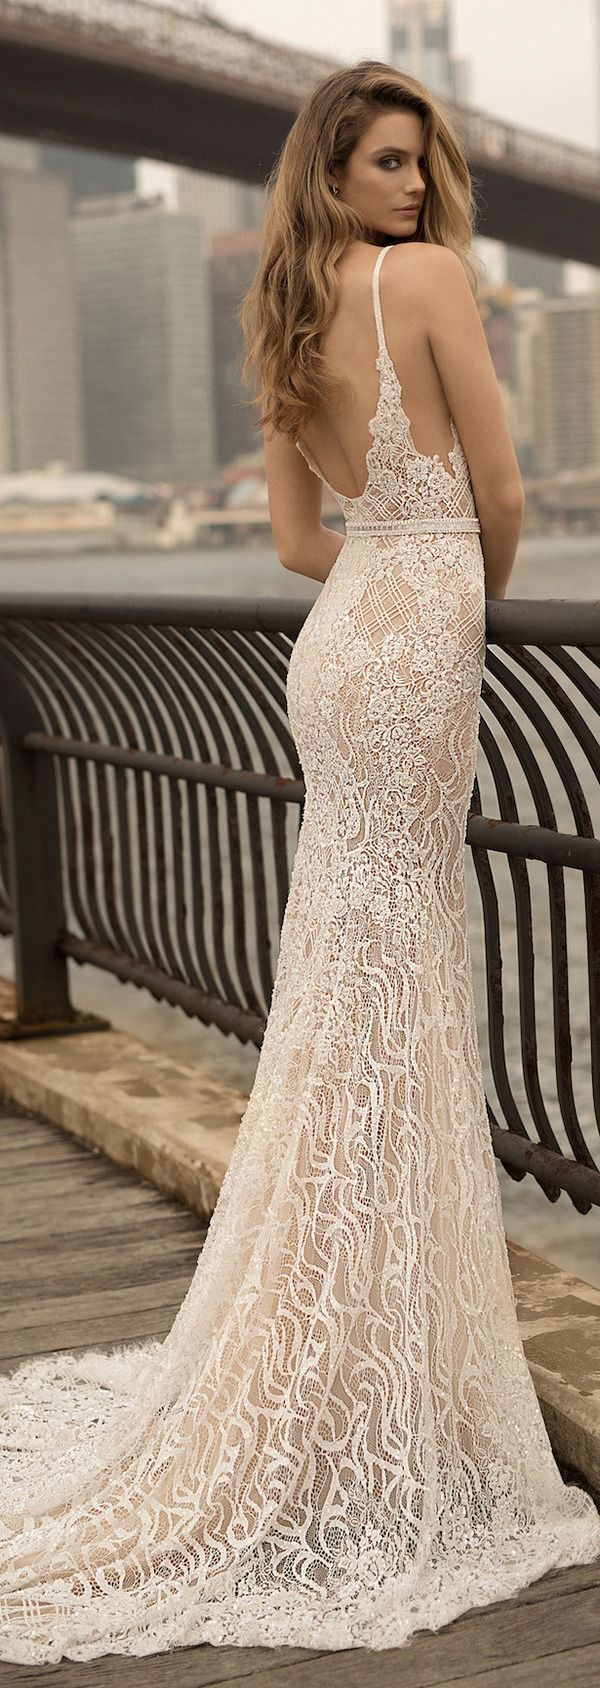 Berta spring wedding dresses deer pearl flowers wedding